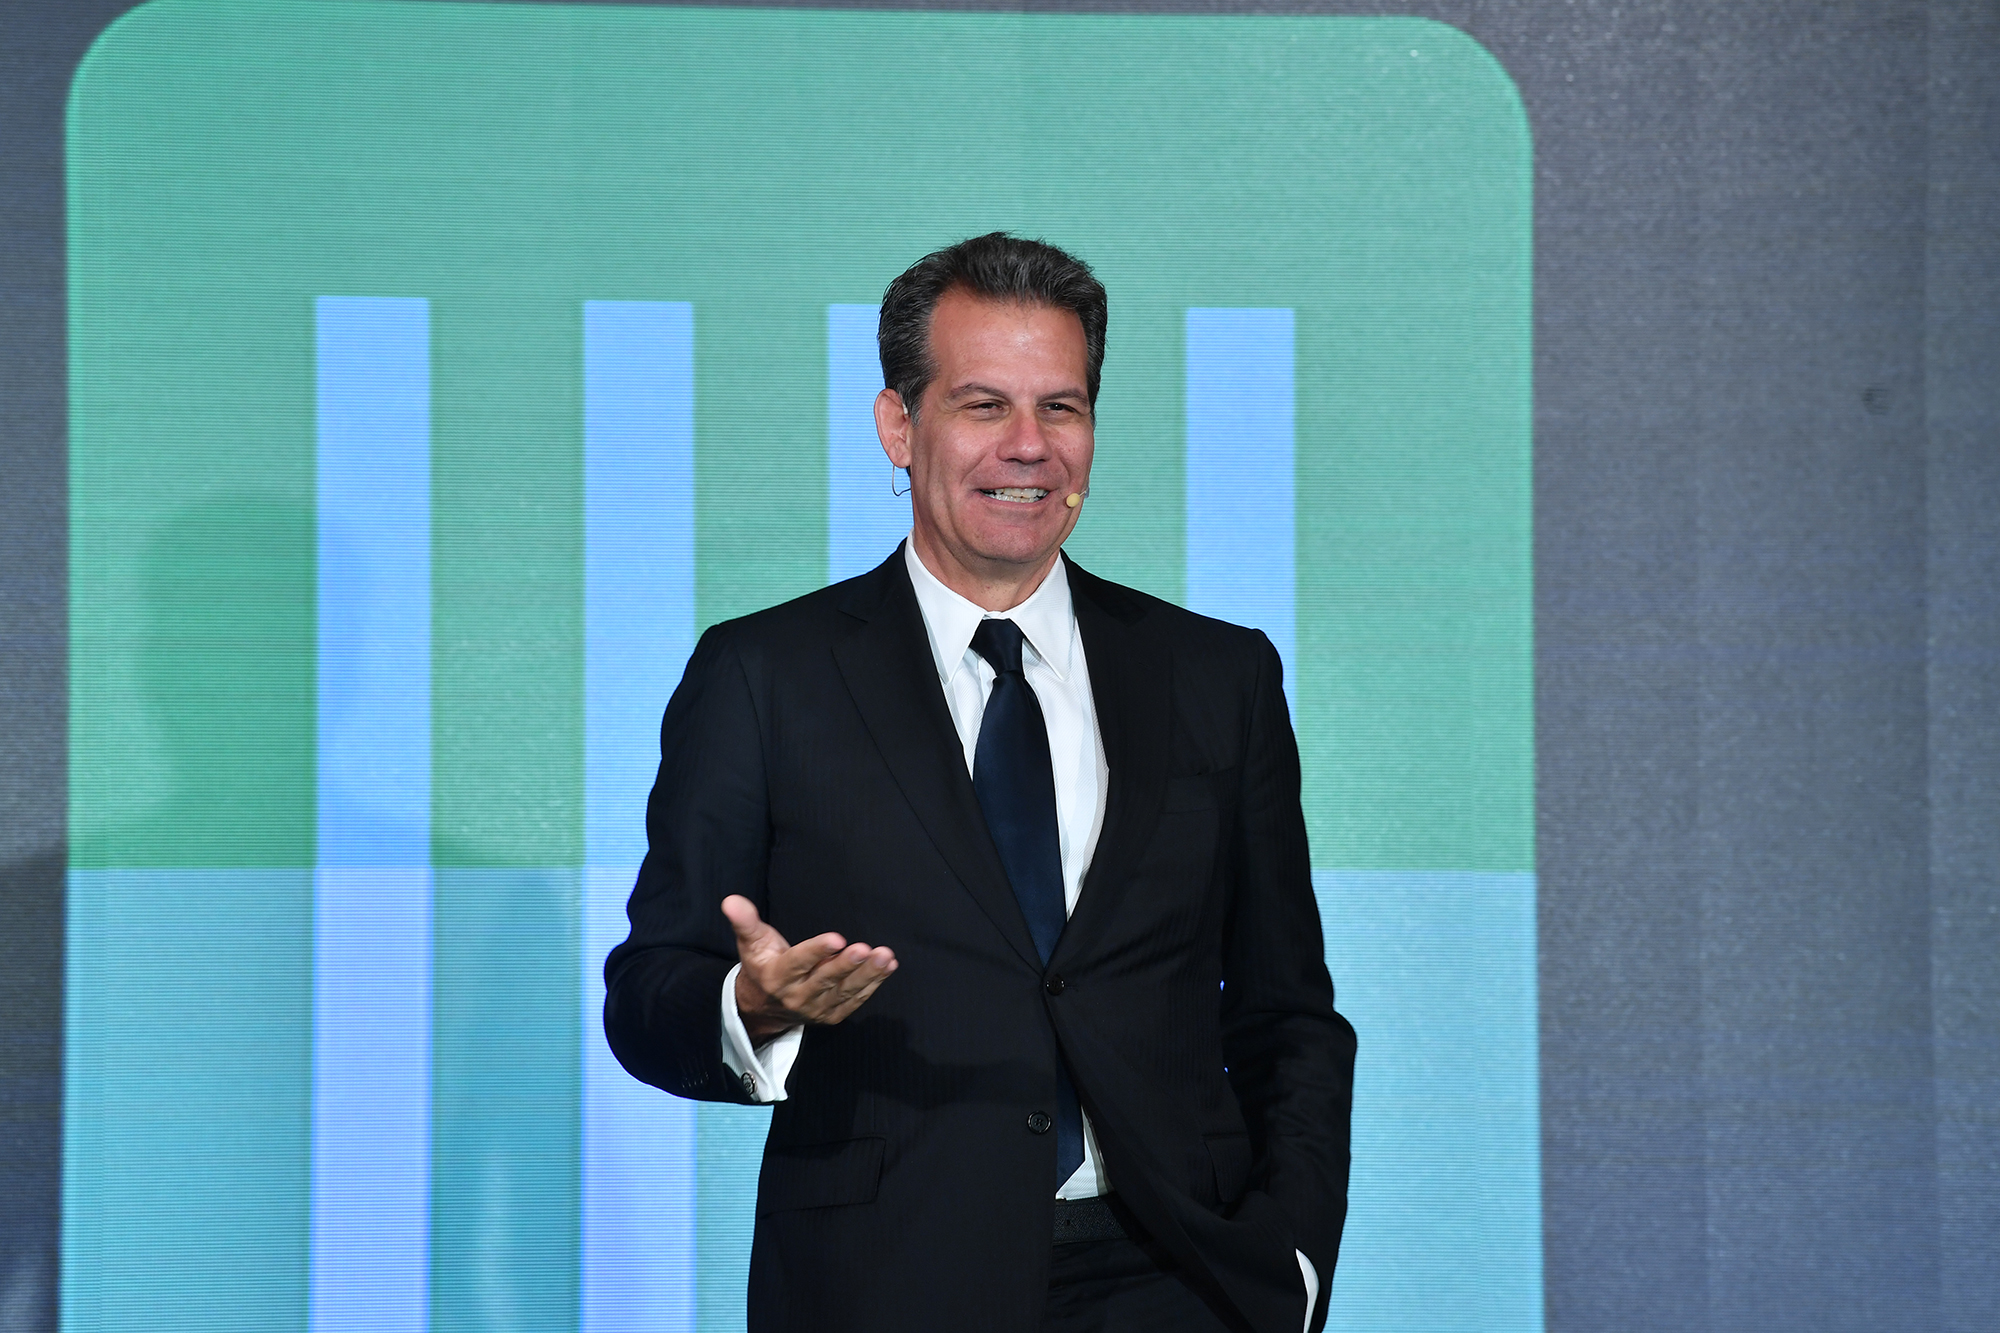 Richard Florida. Photo by Urban Land Institute